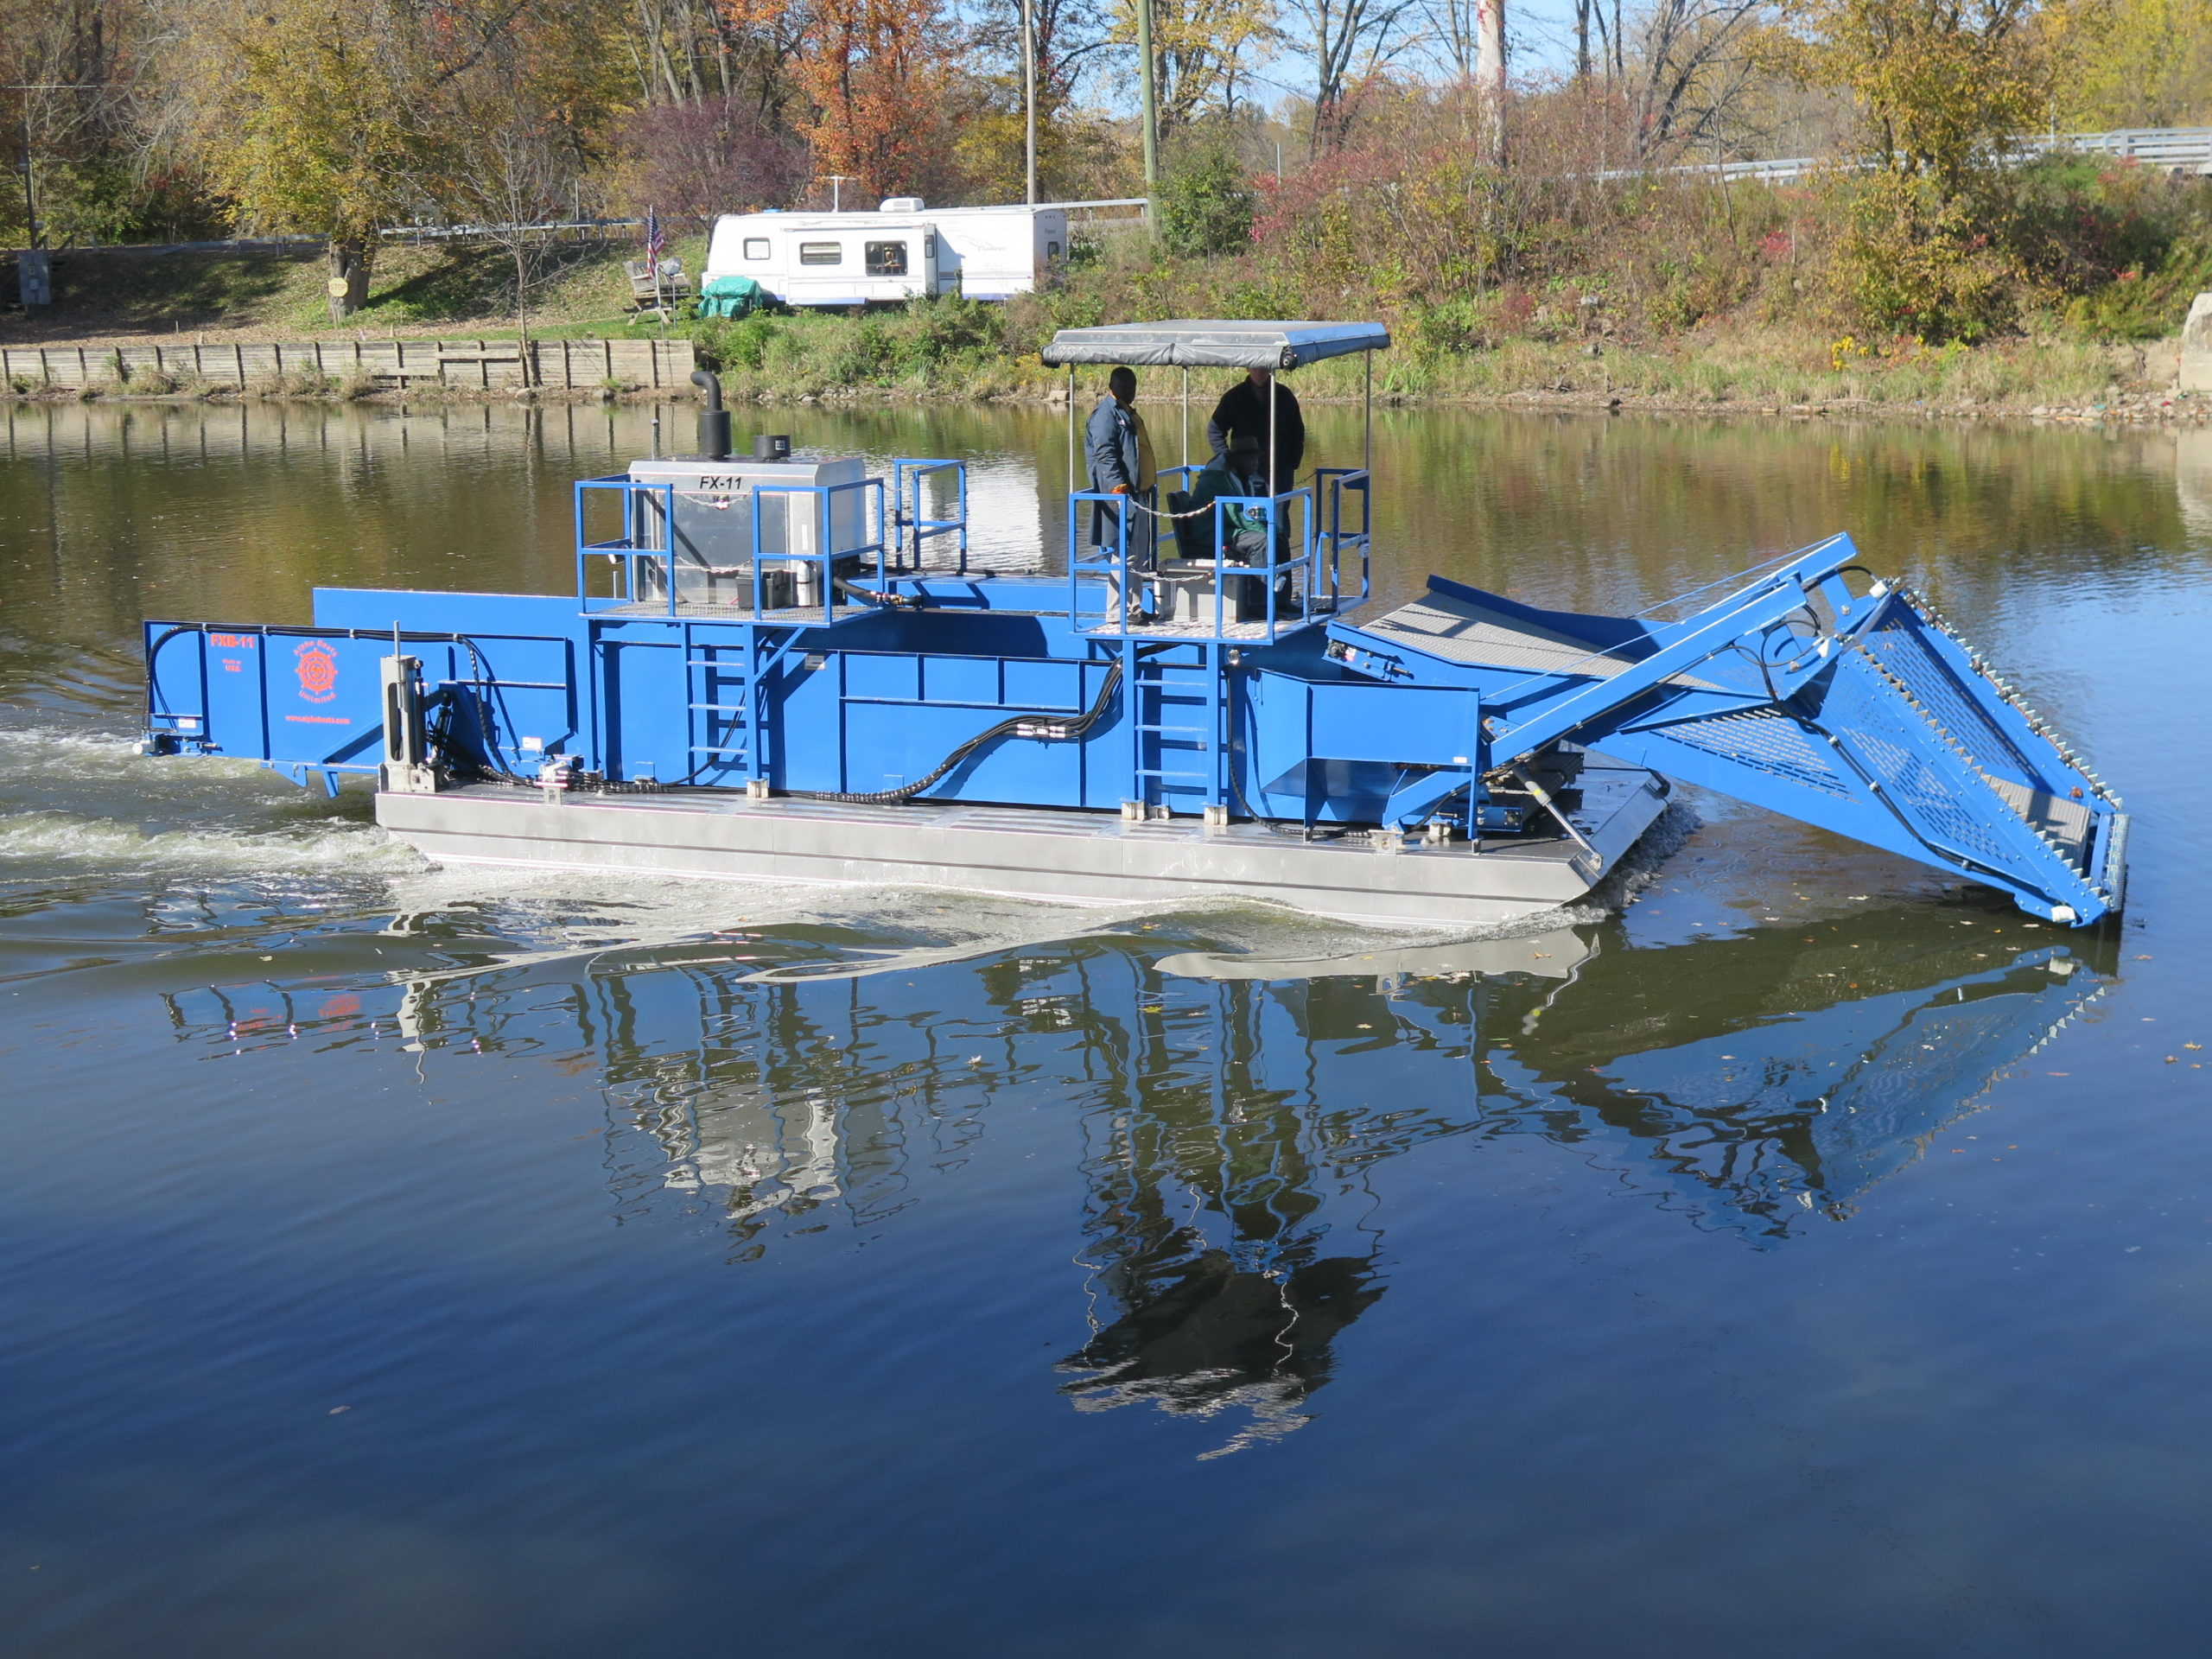 Alphaboats FX-11 Waterweed Harvester working on New York's Erie Canal